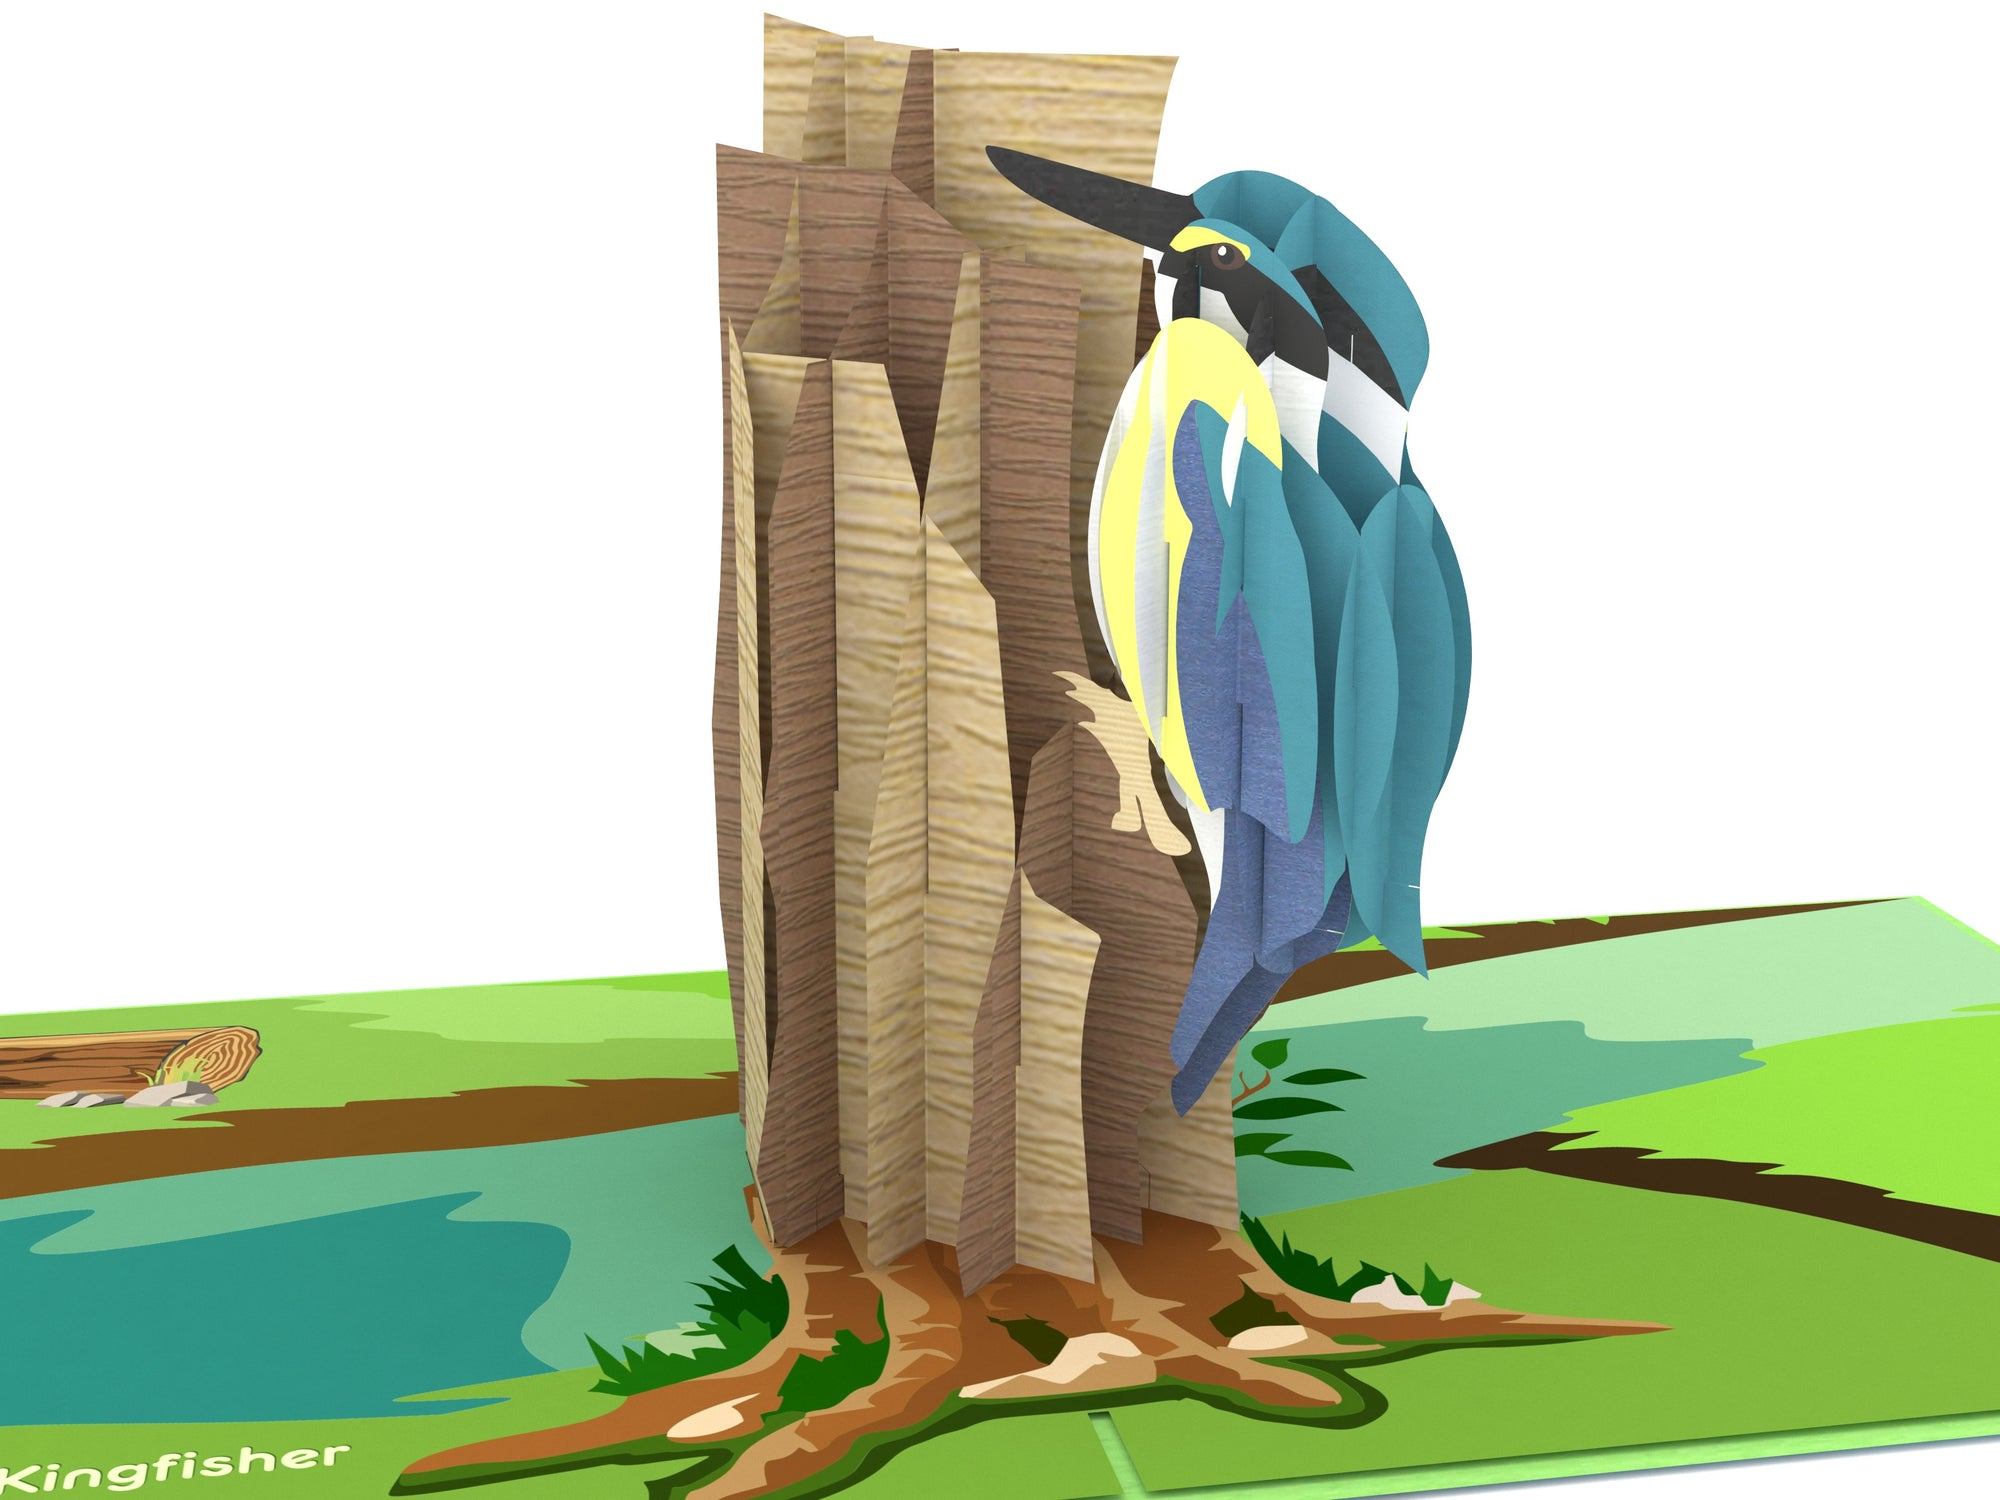 New Zealand Sacred kingfisher 3D Creative Popcard